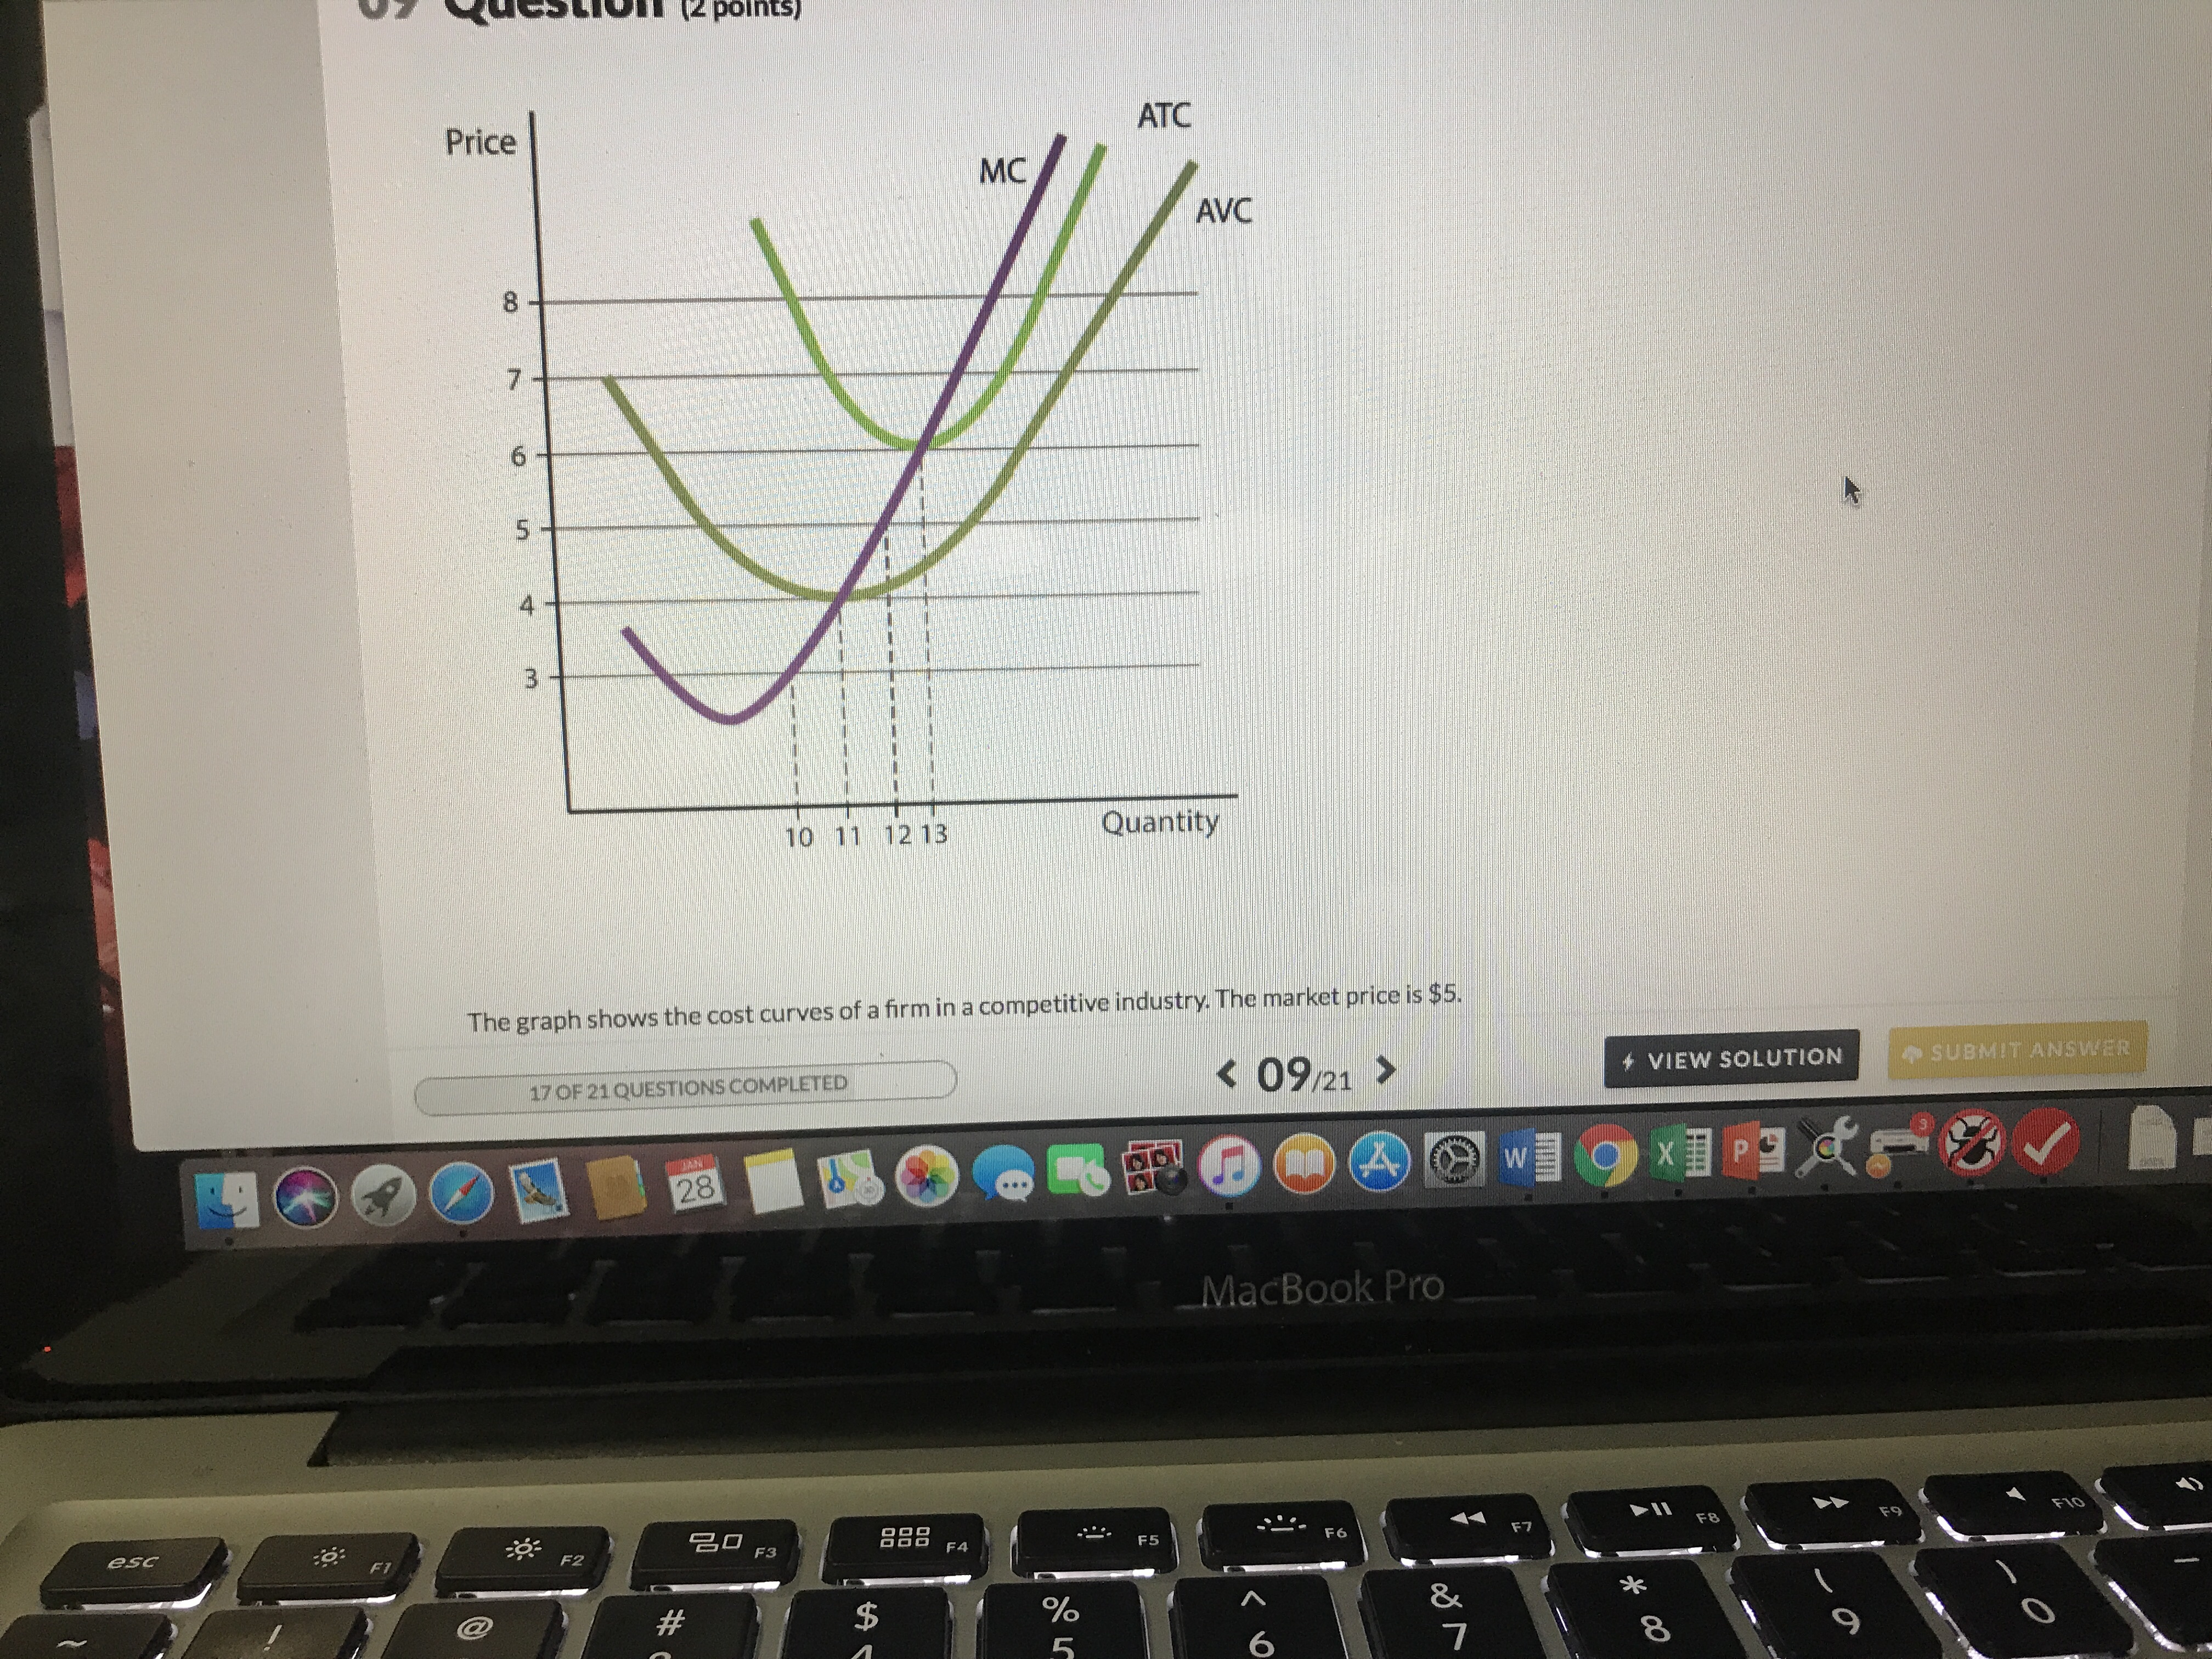 Price ATC MC AVC 8 4 10 11 12 13 Quantity The graph shows the cost curves of a firm in a competitive industry. The market price is $5. K09/21 VIEW SOLUTION SUBMIT ANSWER 17 OF 21QUESTIONS COMPLETED 28 MacBook Pro 名□ F3 esc :O F7 F8 F9 F2 8% 7 6